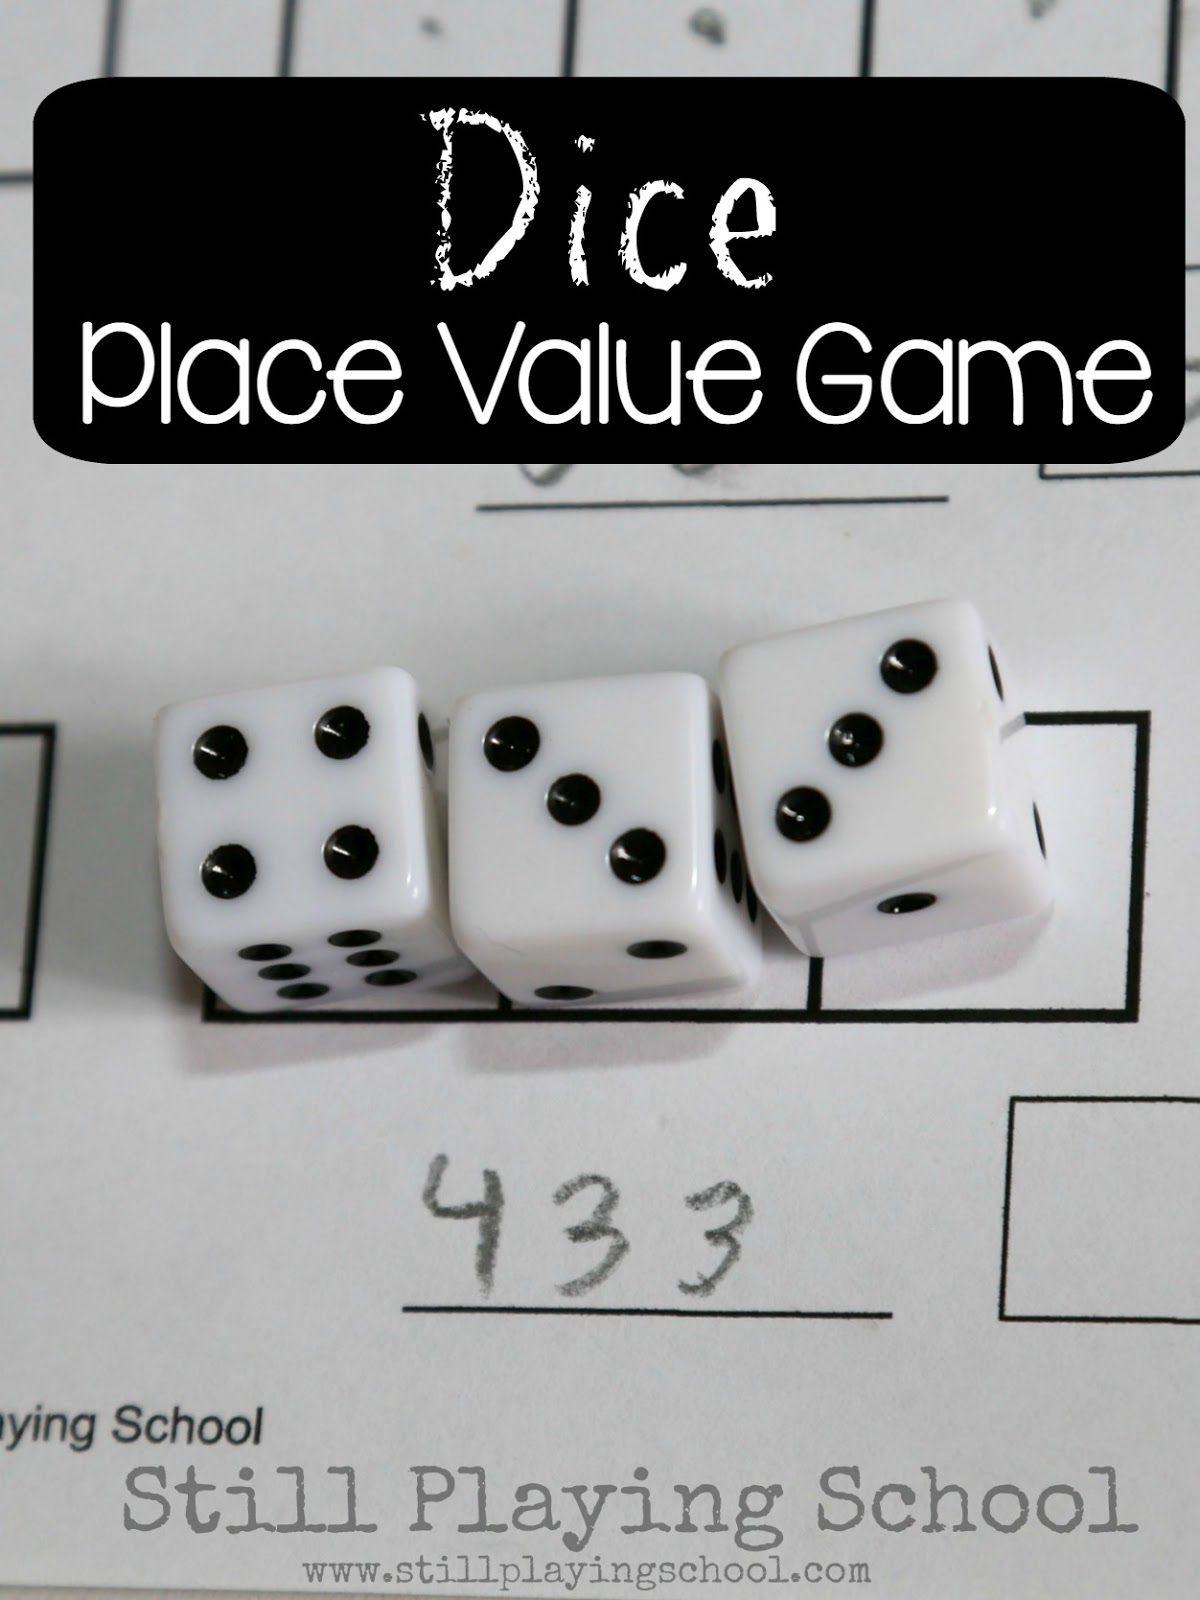 Place Value Game with Dice | Still Playing School